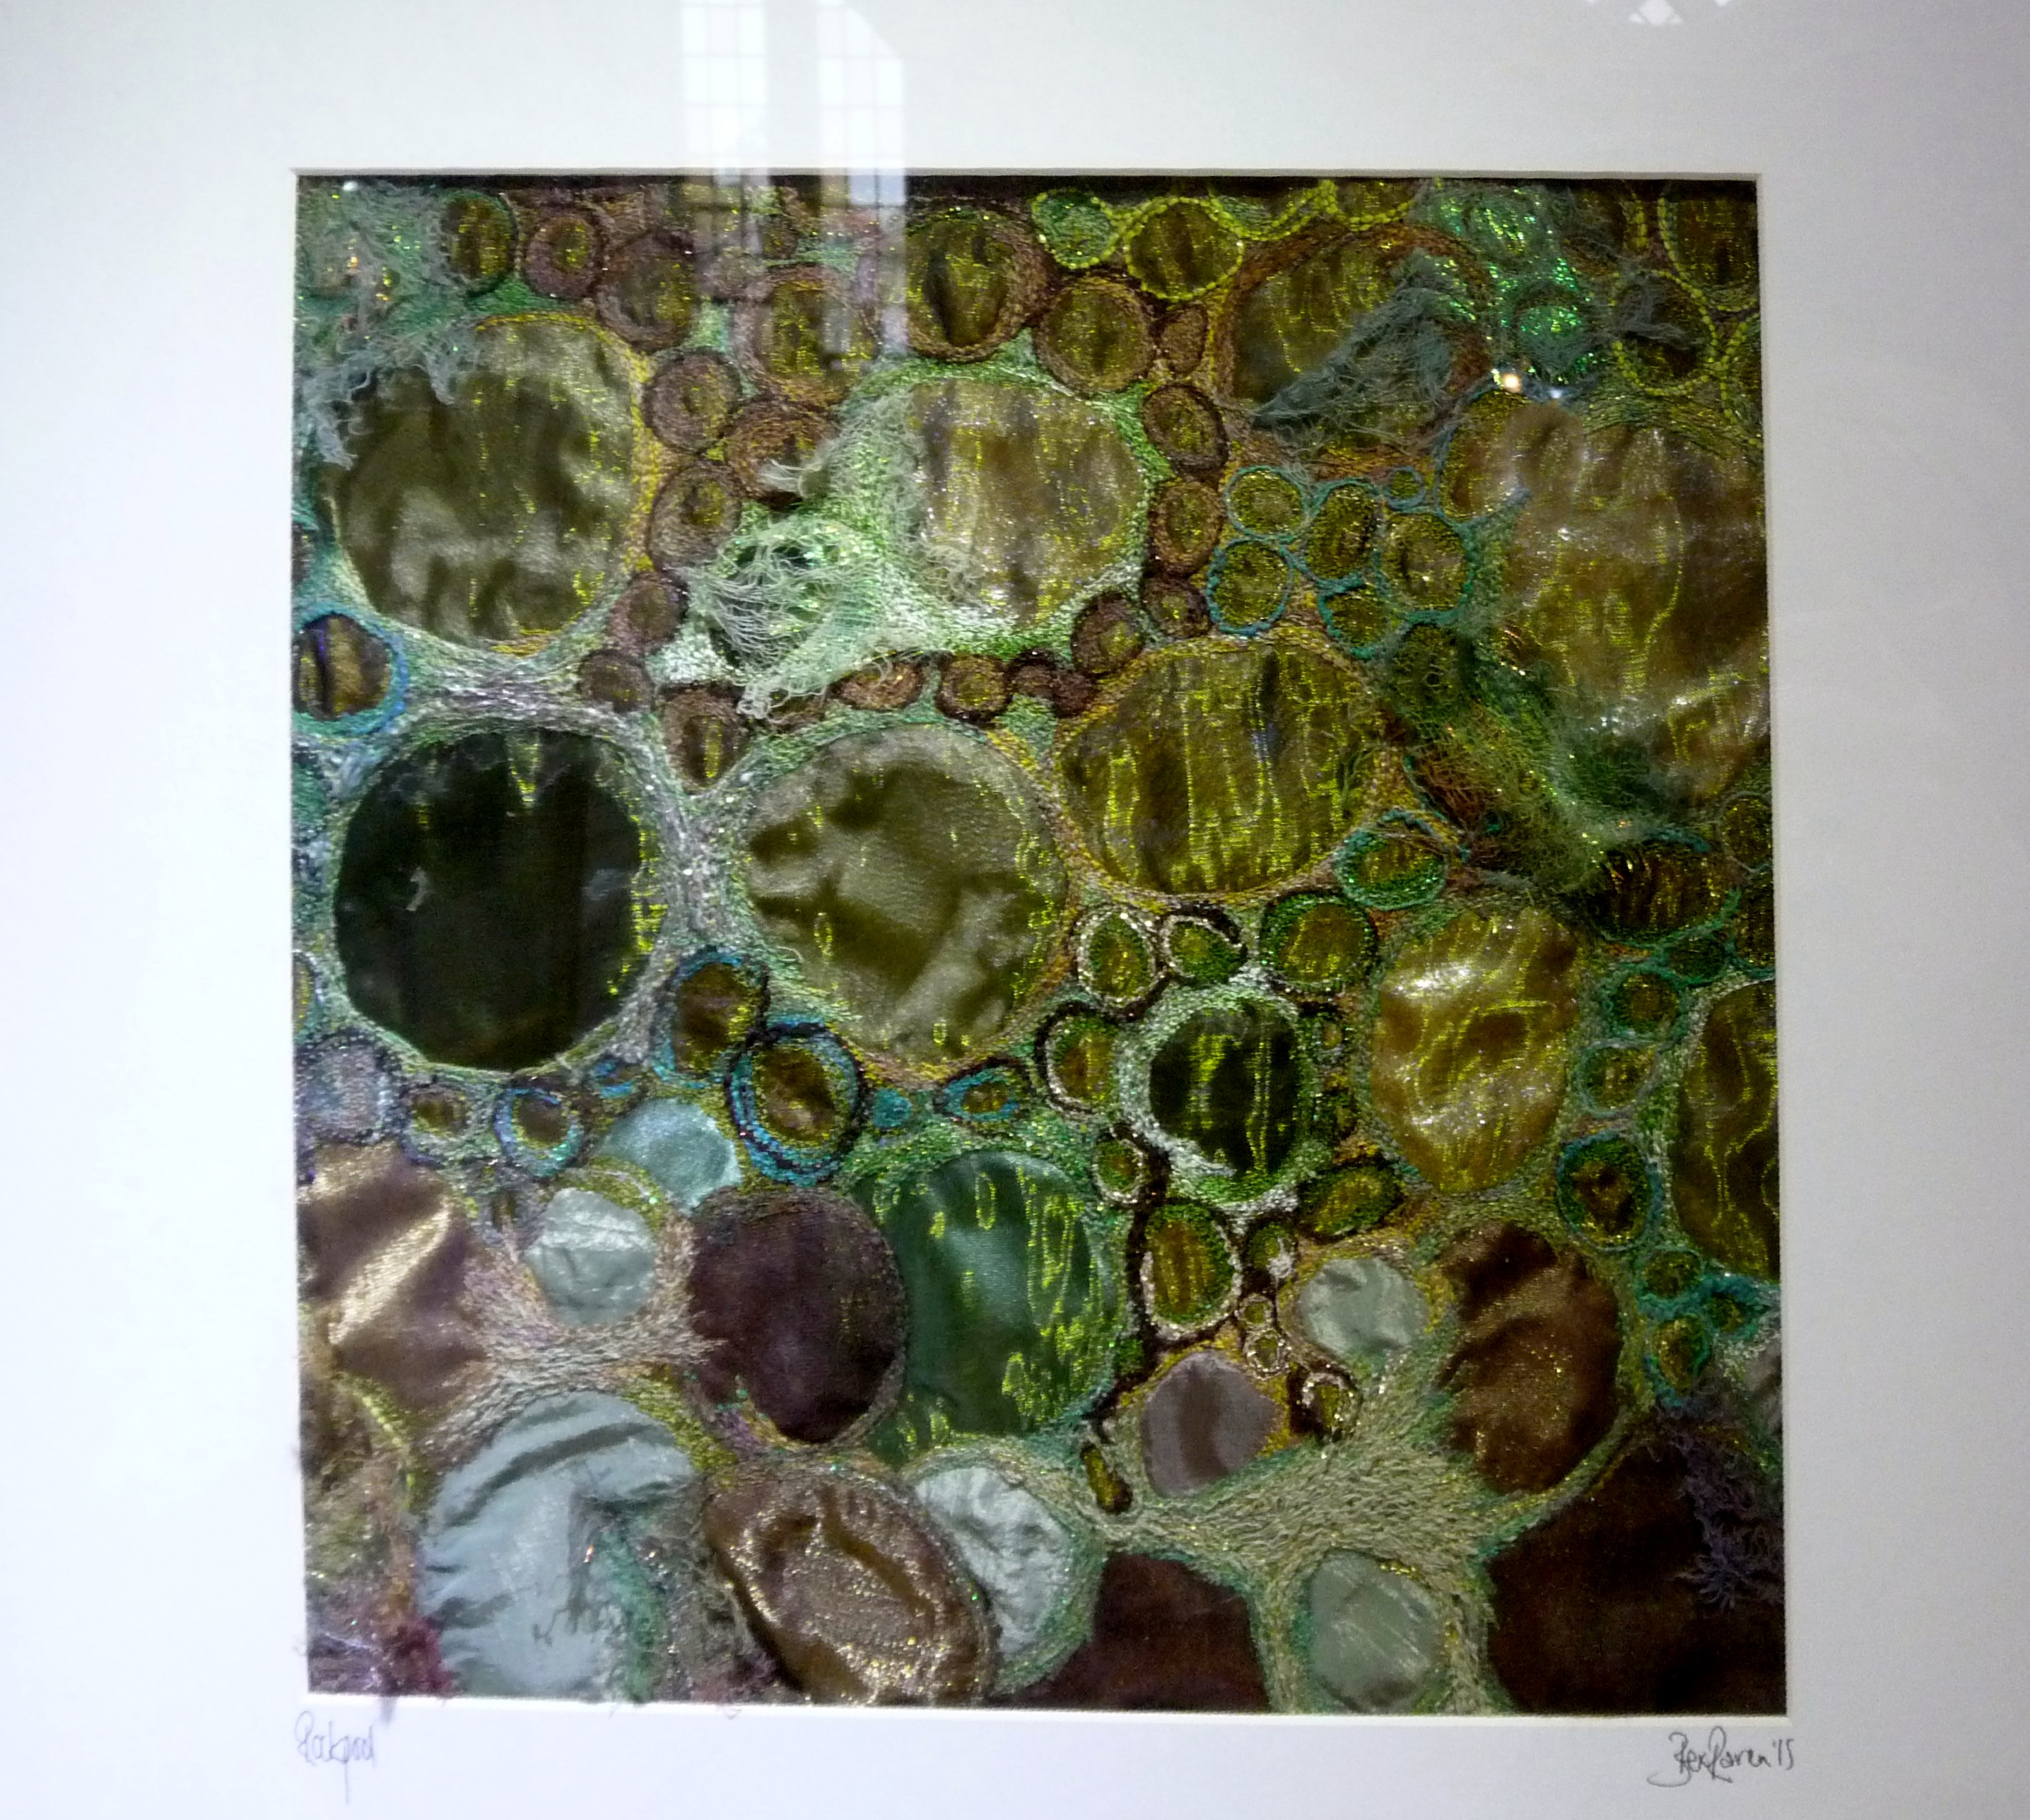 ROCKPOOL by Bex Raven, free machine embroidery